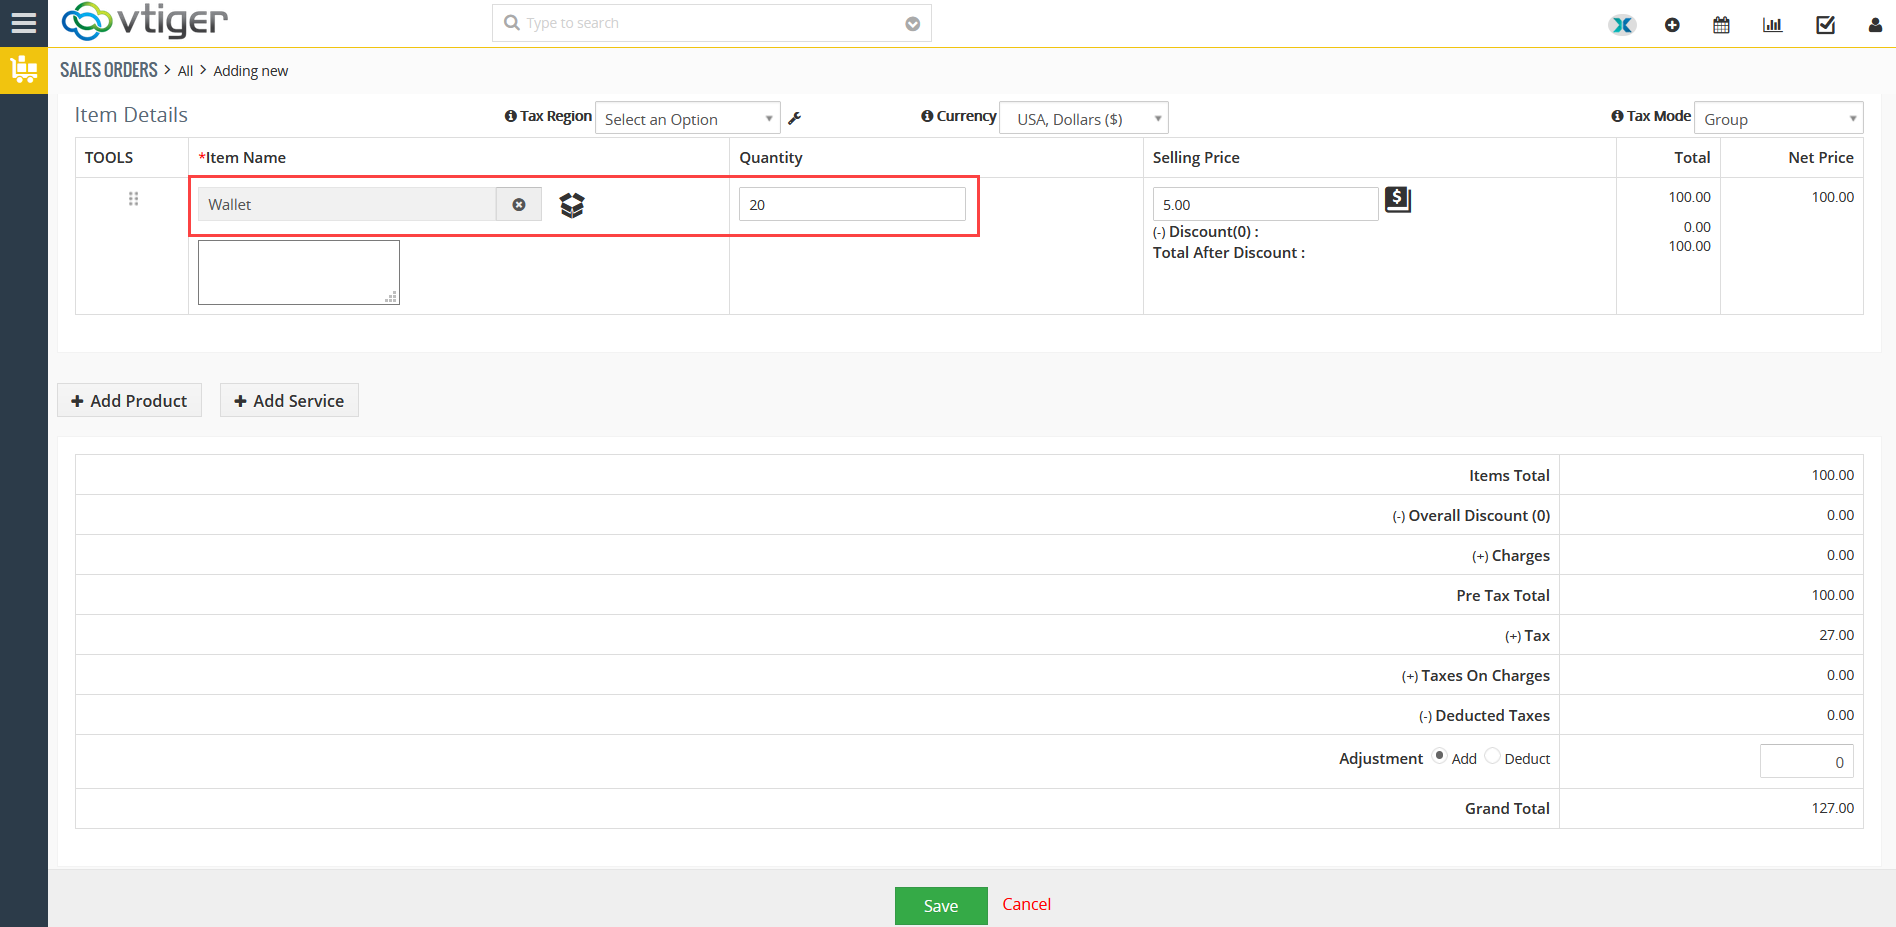 Generating Purchase order from Sales Order